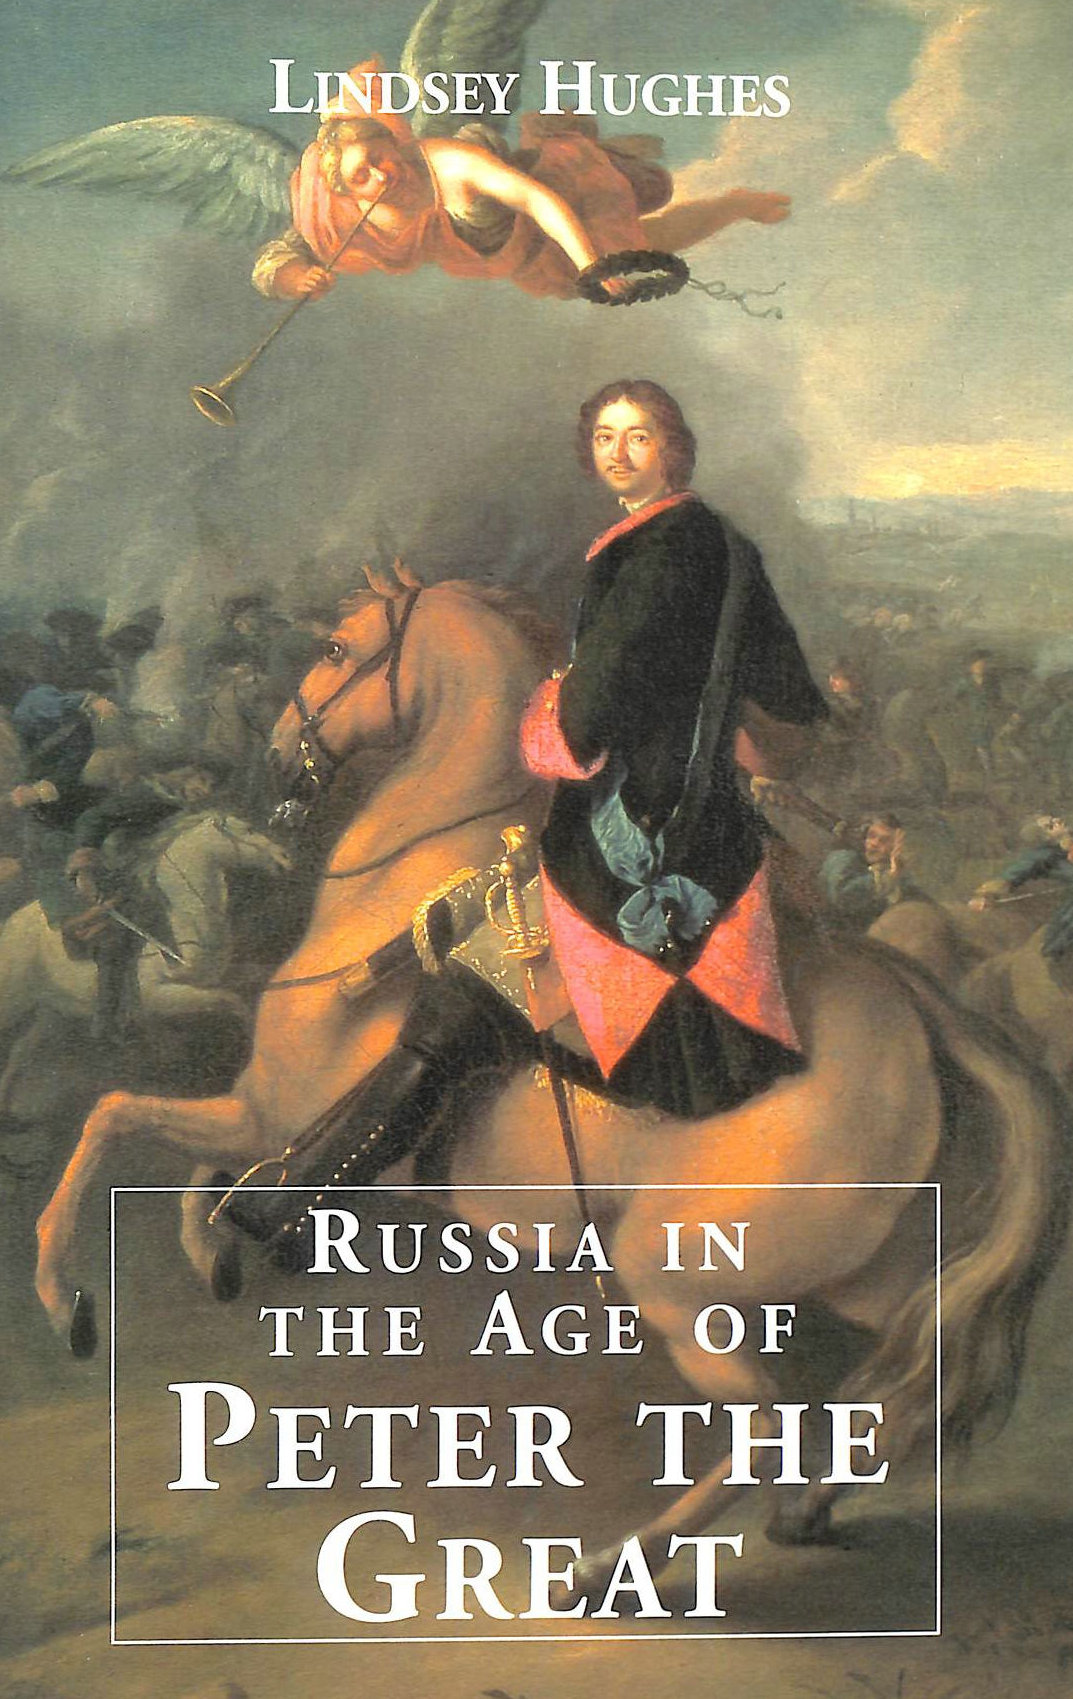 HUGHES, LINDSEY - Russia in the Age of Peter the Great